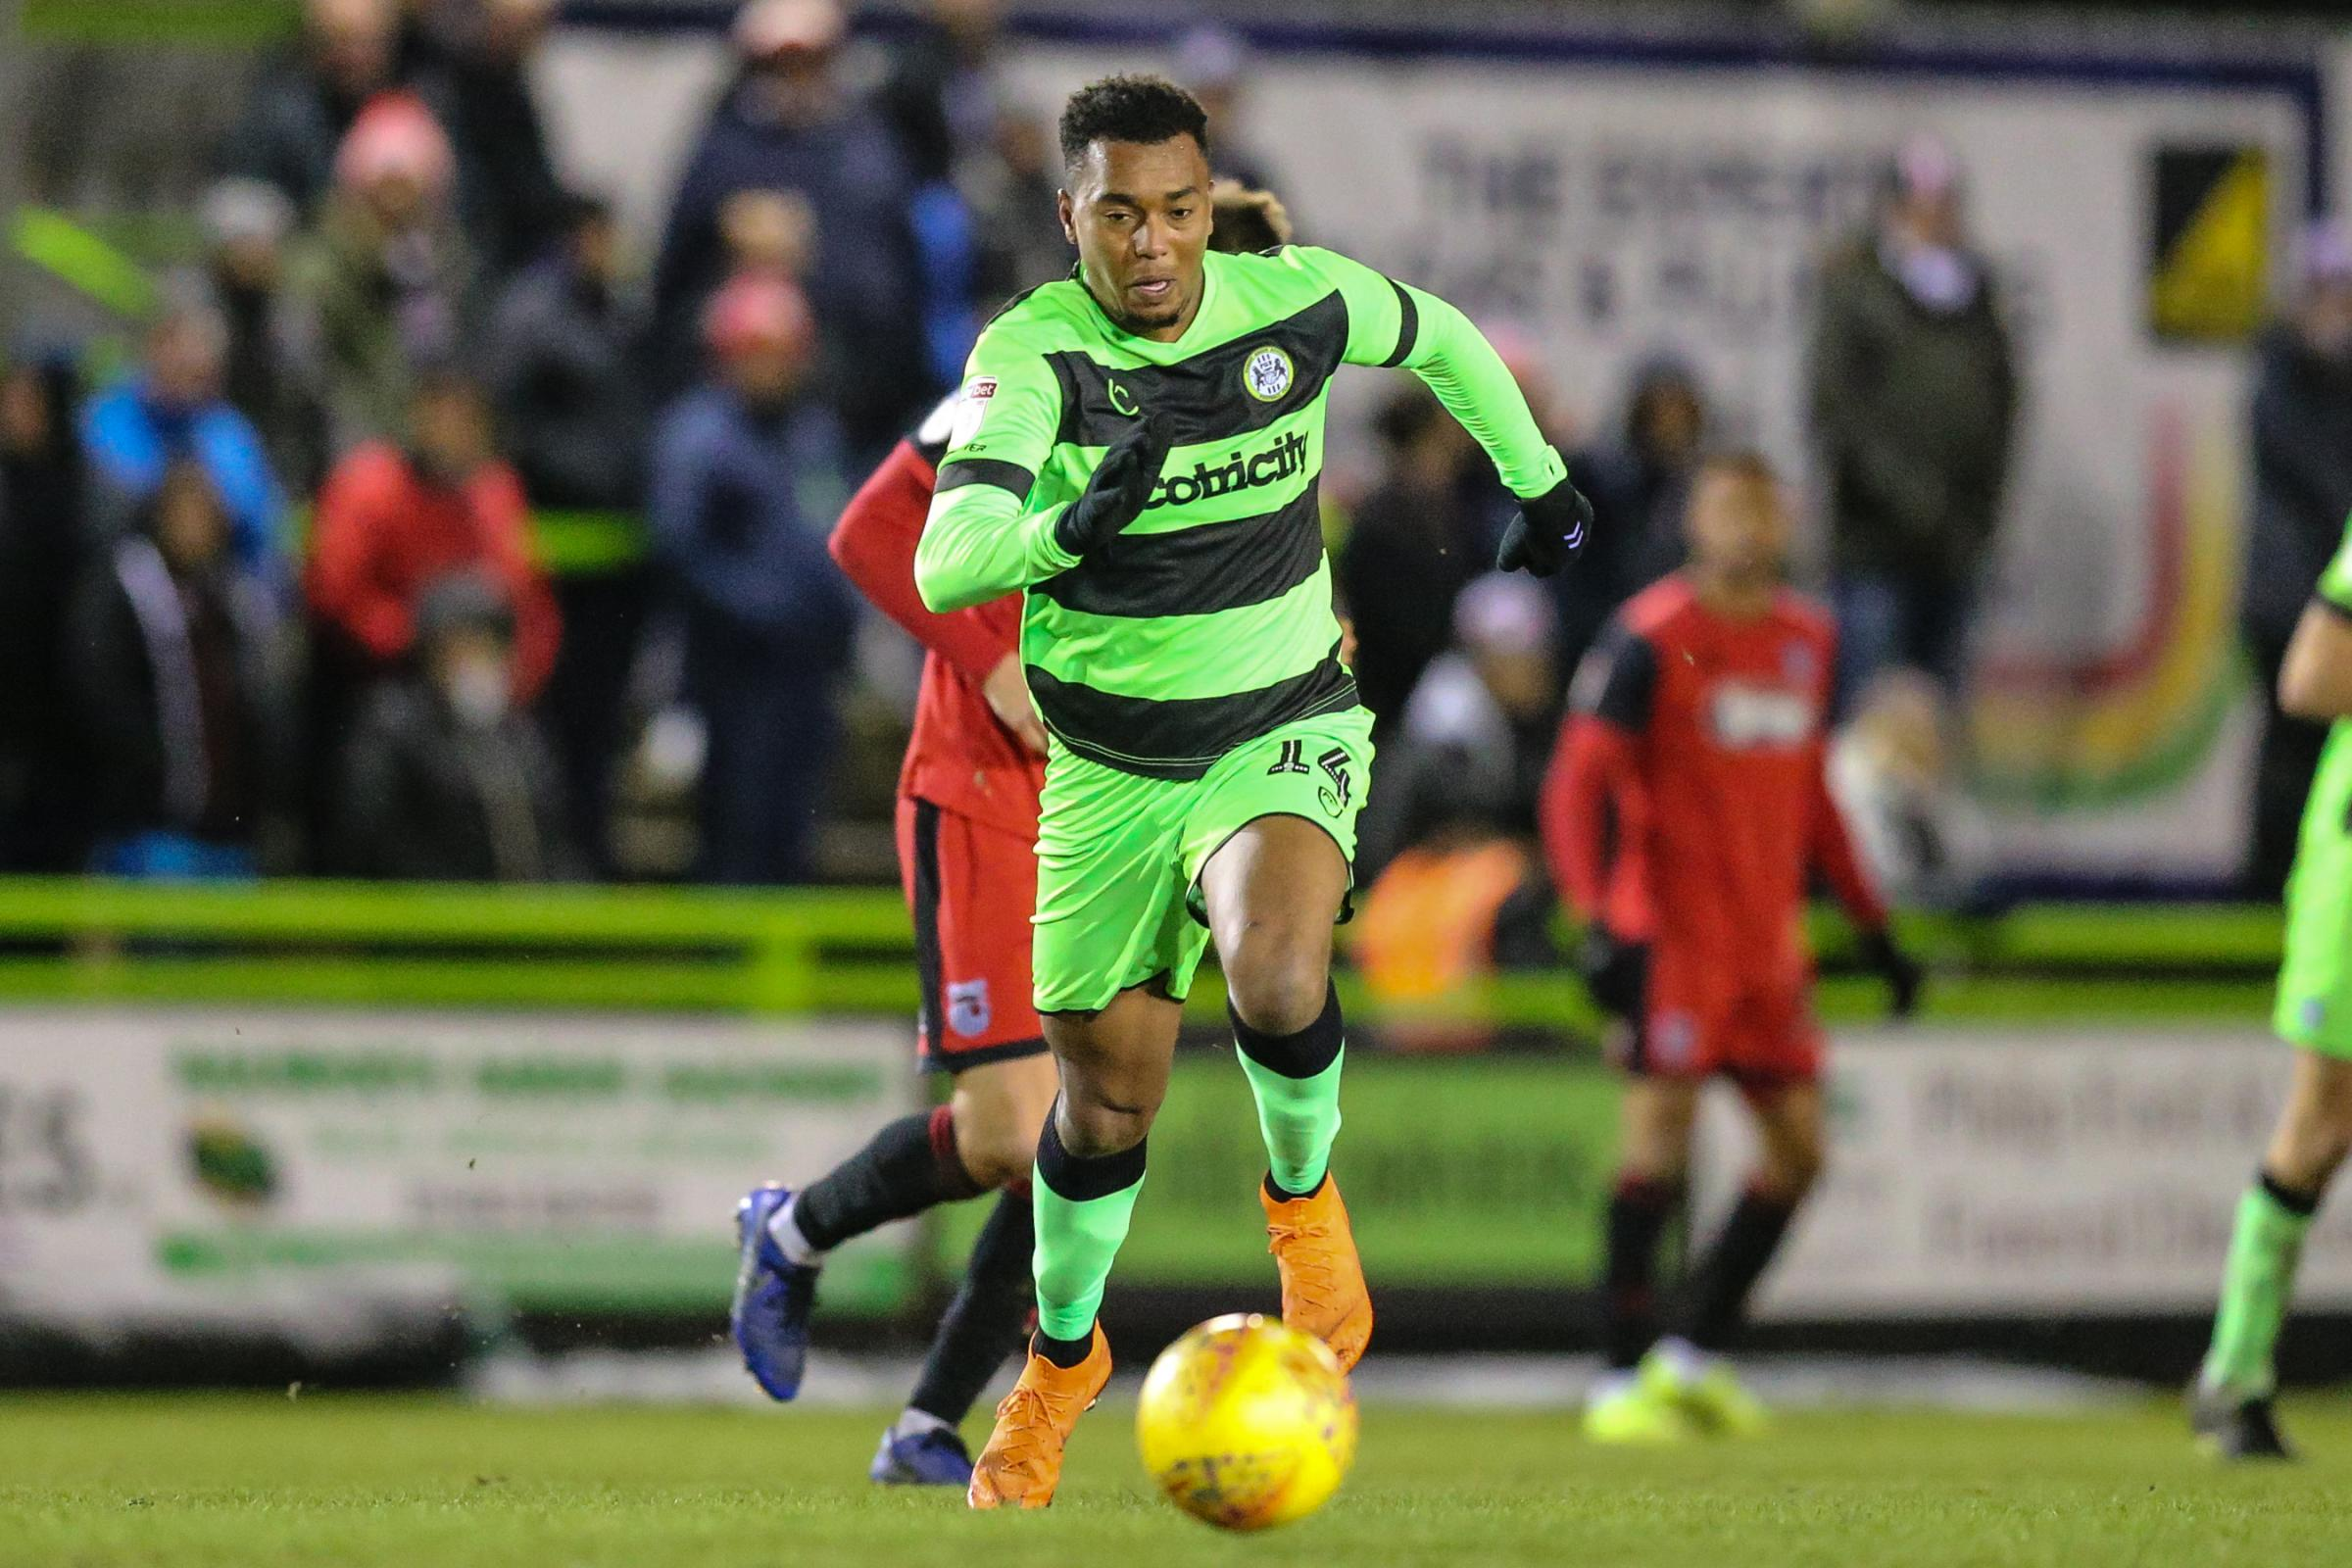 Forest Green striker moves to Gillingham on loan